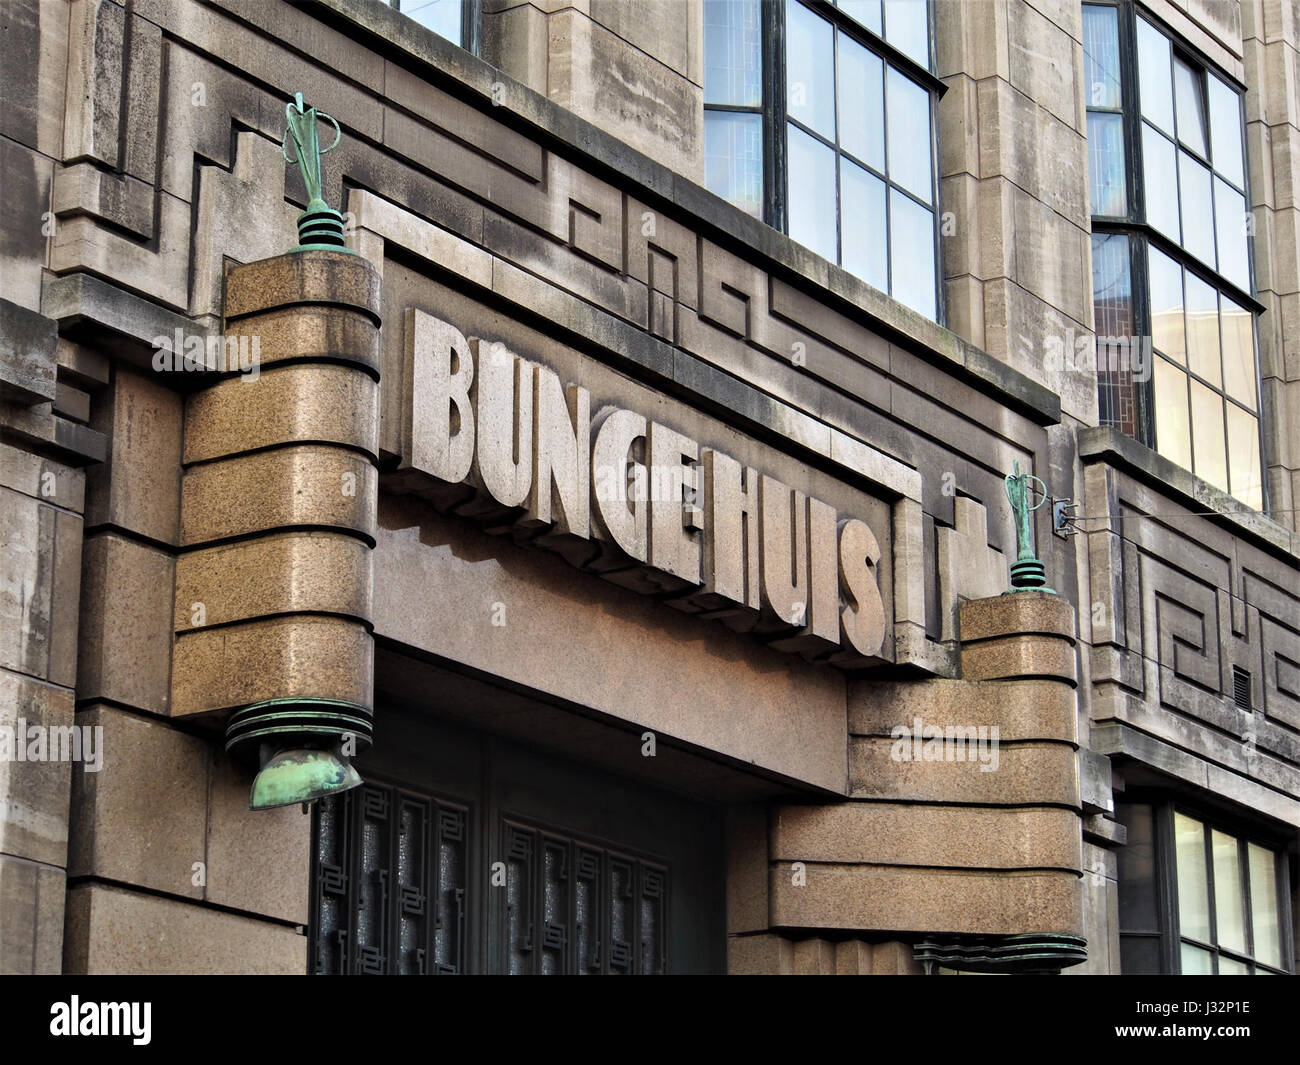 Bunge huis art deco ingang foto1 stock photo: 139588106 alamy